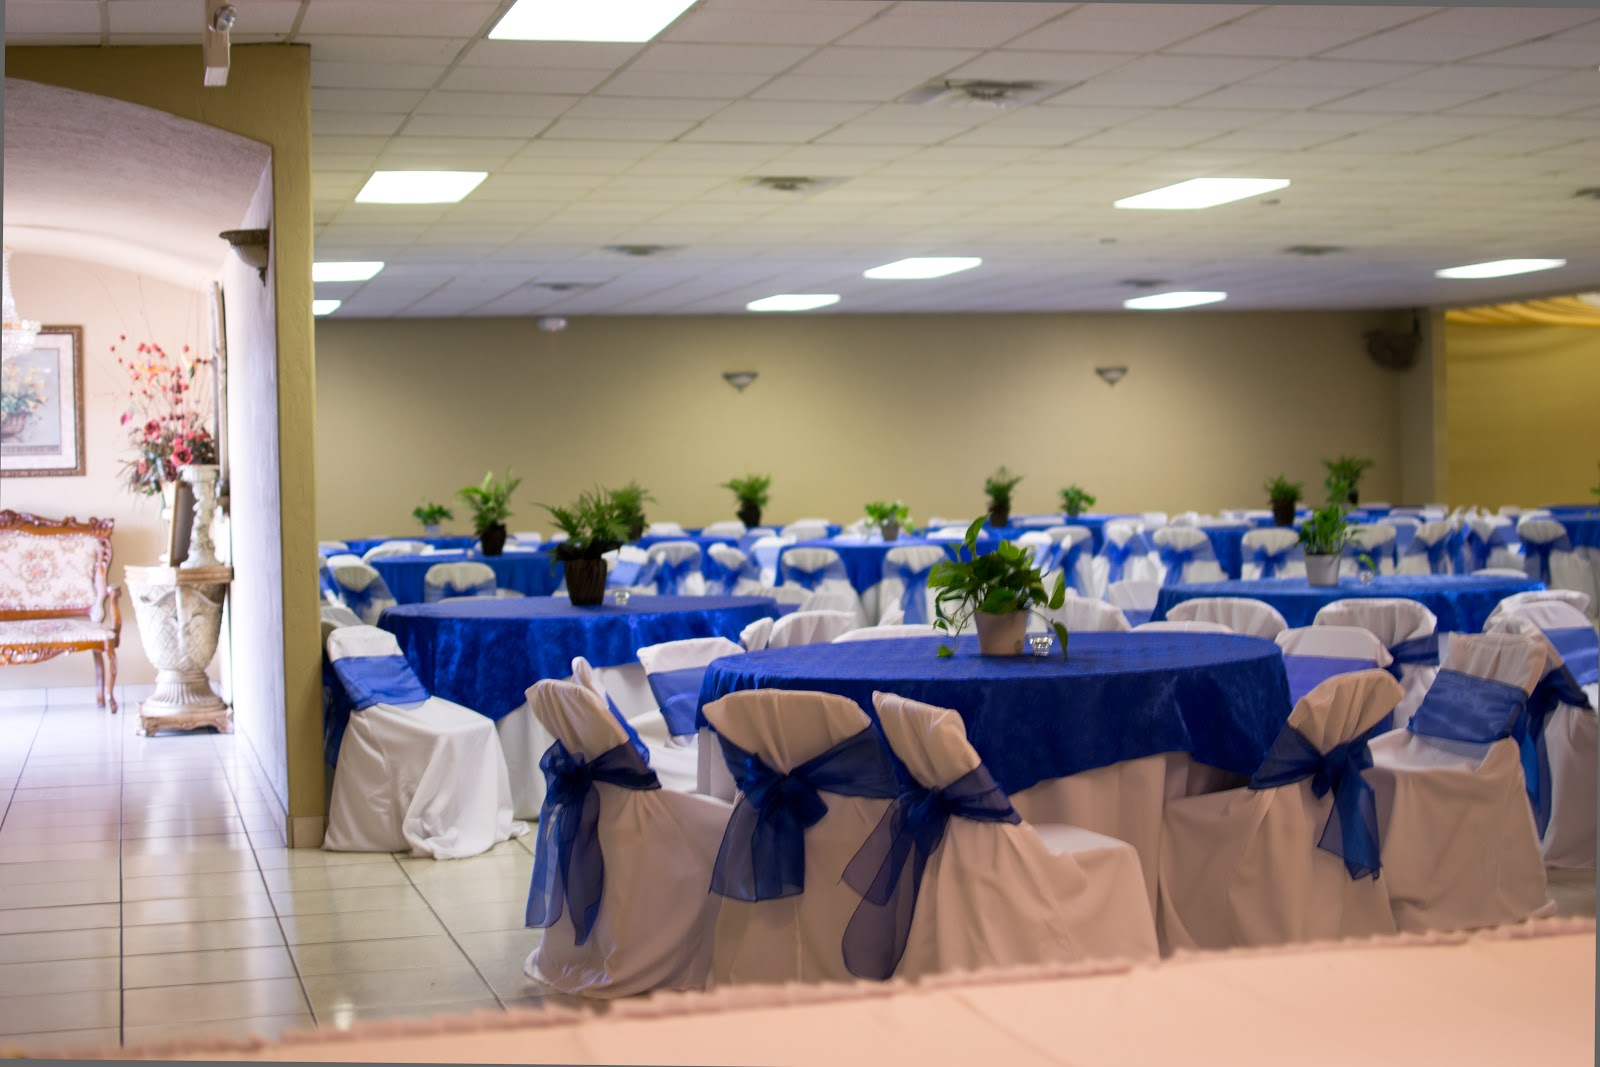 Rincon real hall decorations wedding anniversary reception for Wedding hall decoration photos